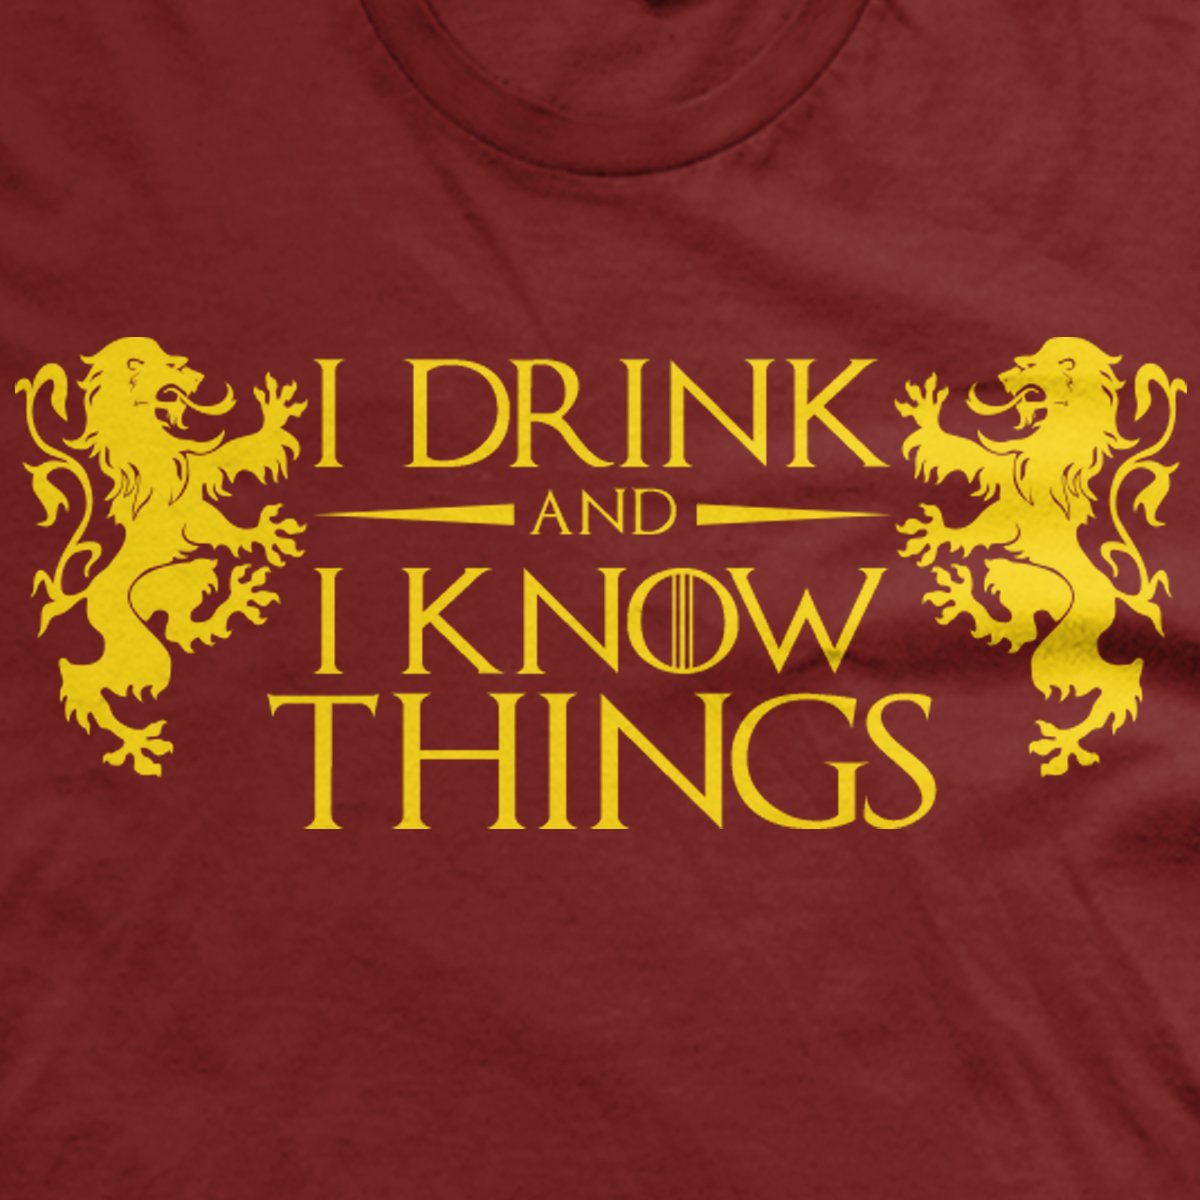 I Drink and I Know Things shirts